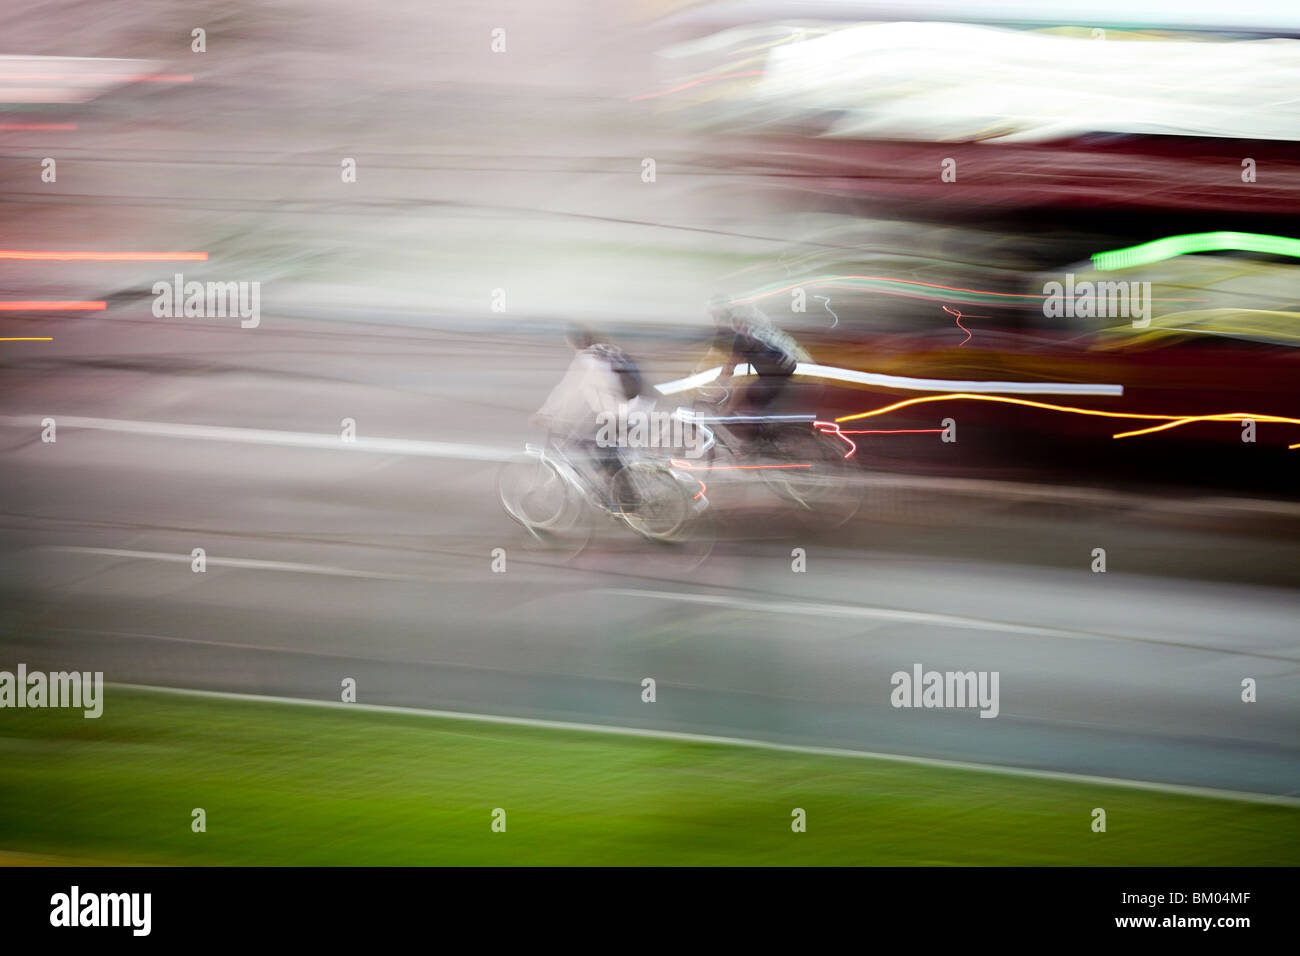 Panning shot of cyclists by night, Berlin, Germany - Stock Image